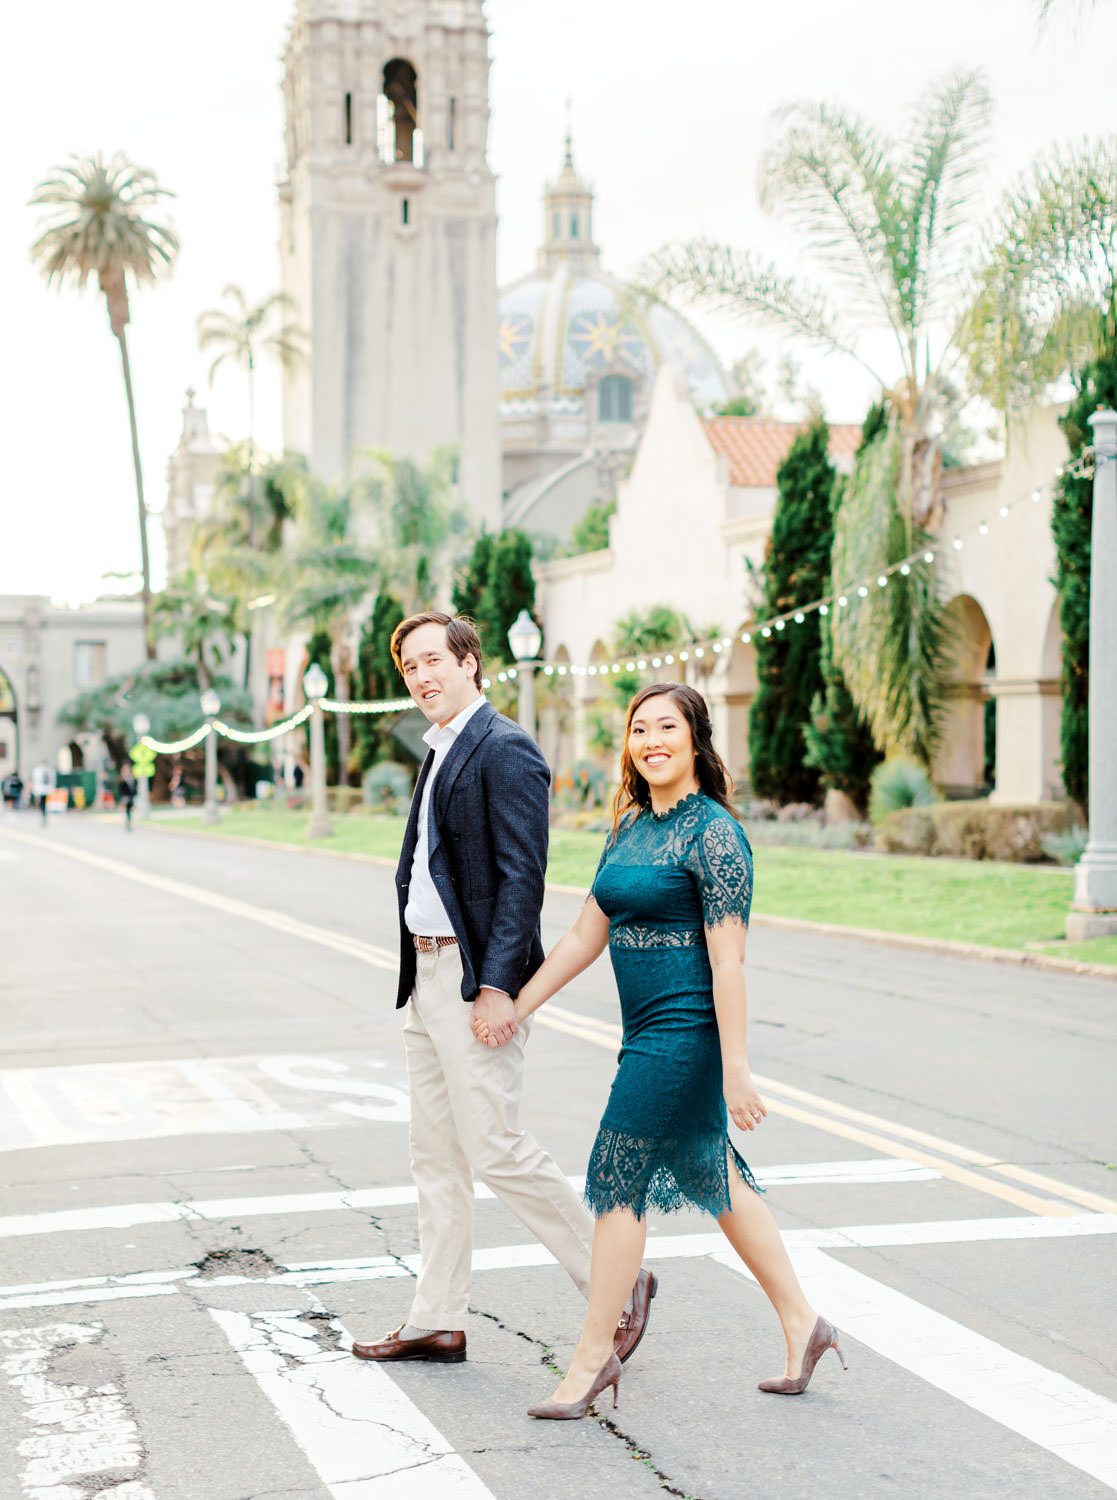 Bride wearing dark teal lace cut dress with curled hair and soft makeup walking Groom in navy wool suit jacket and khakis, Balboa Park bell tower engagement photos by Cavin Elizabeth Photography